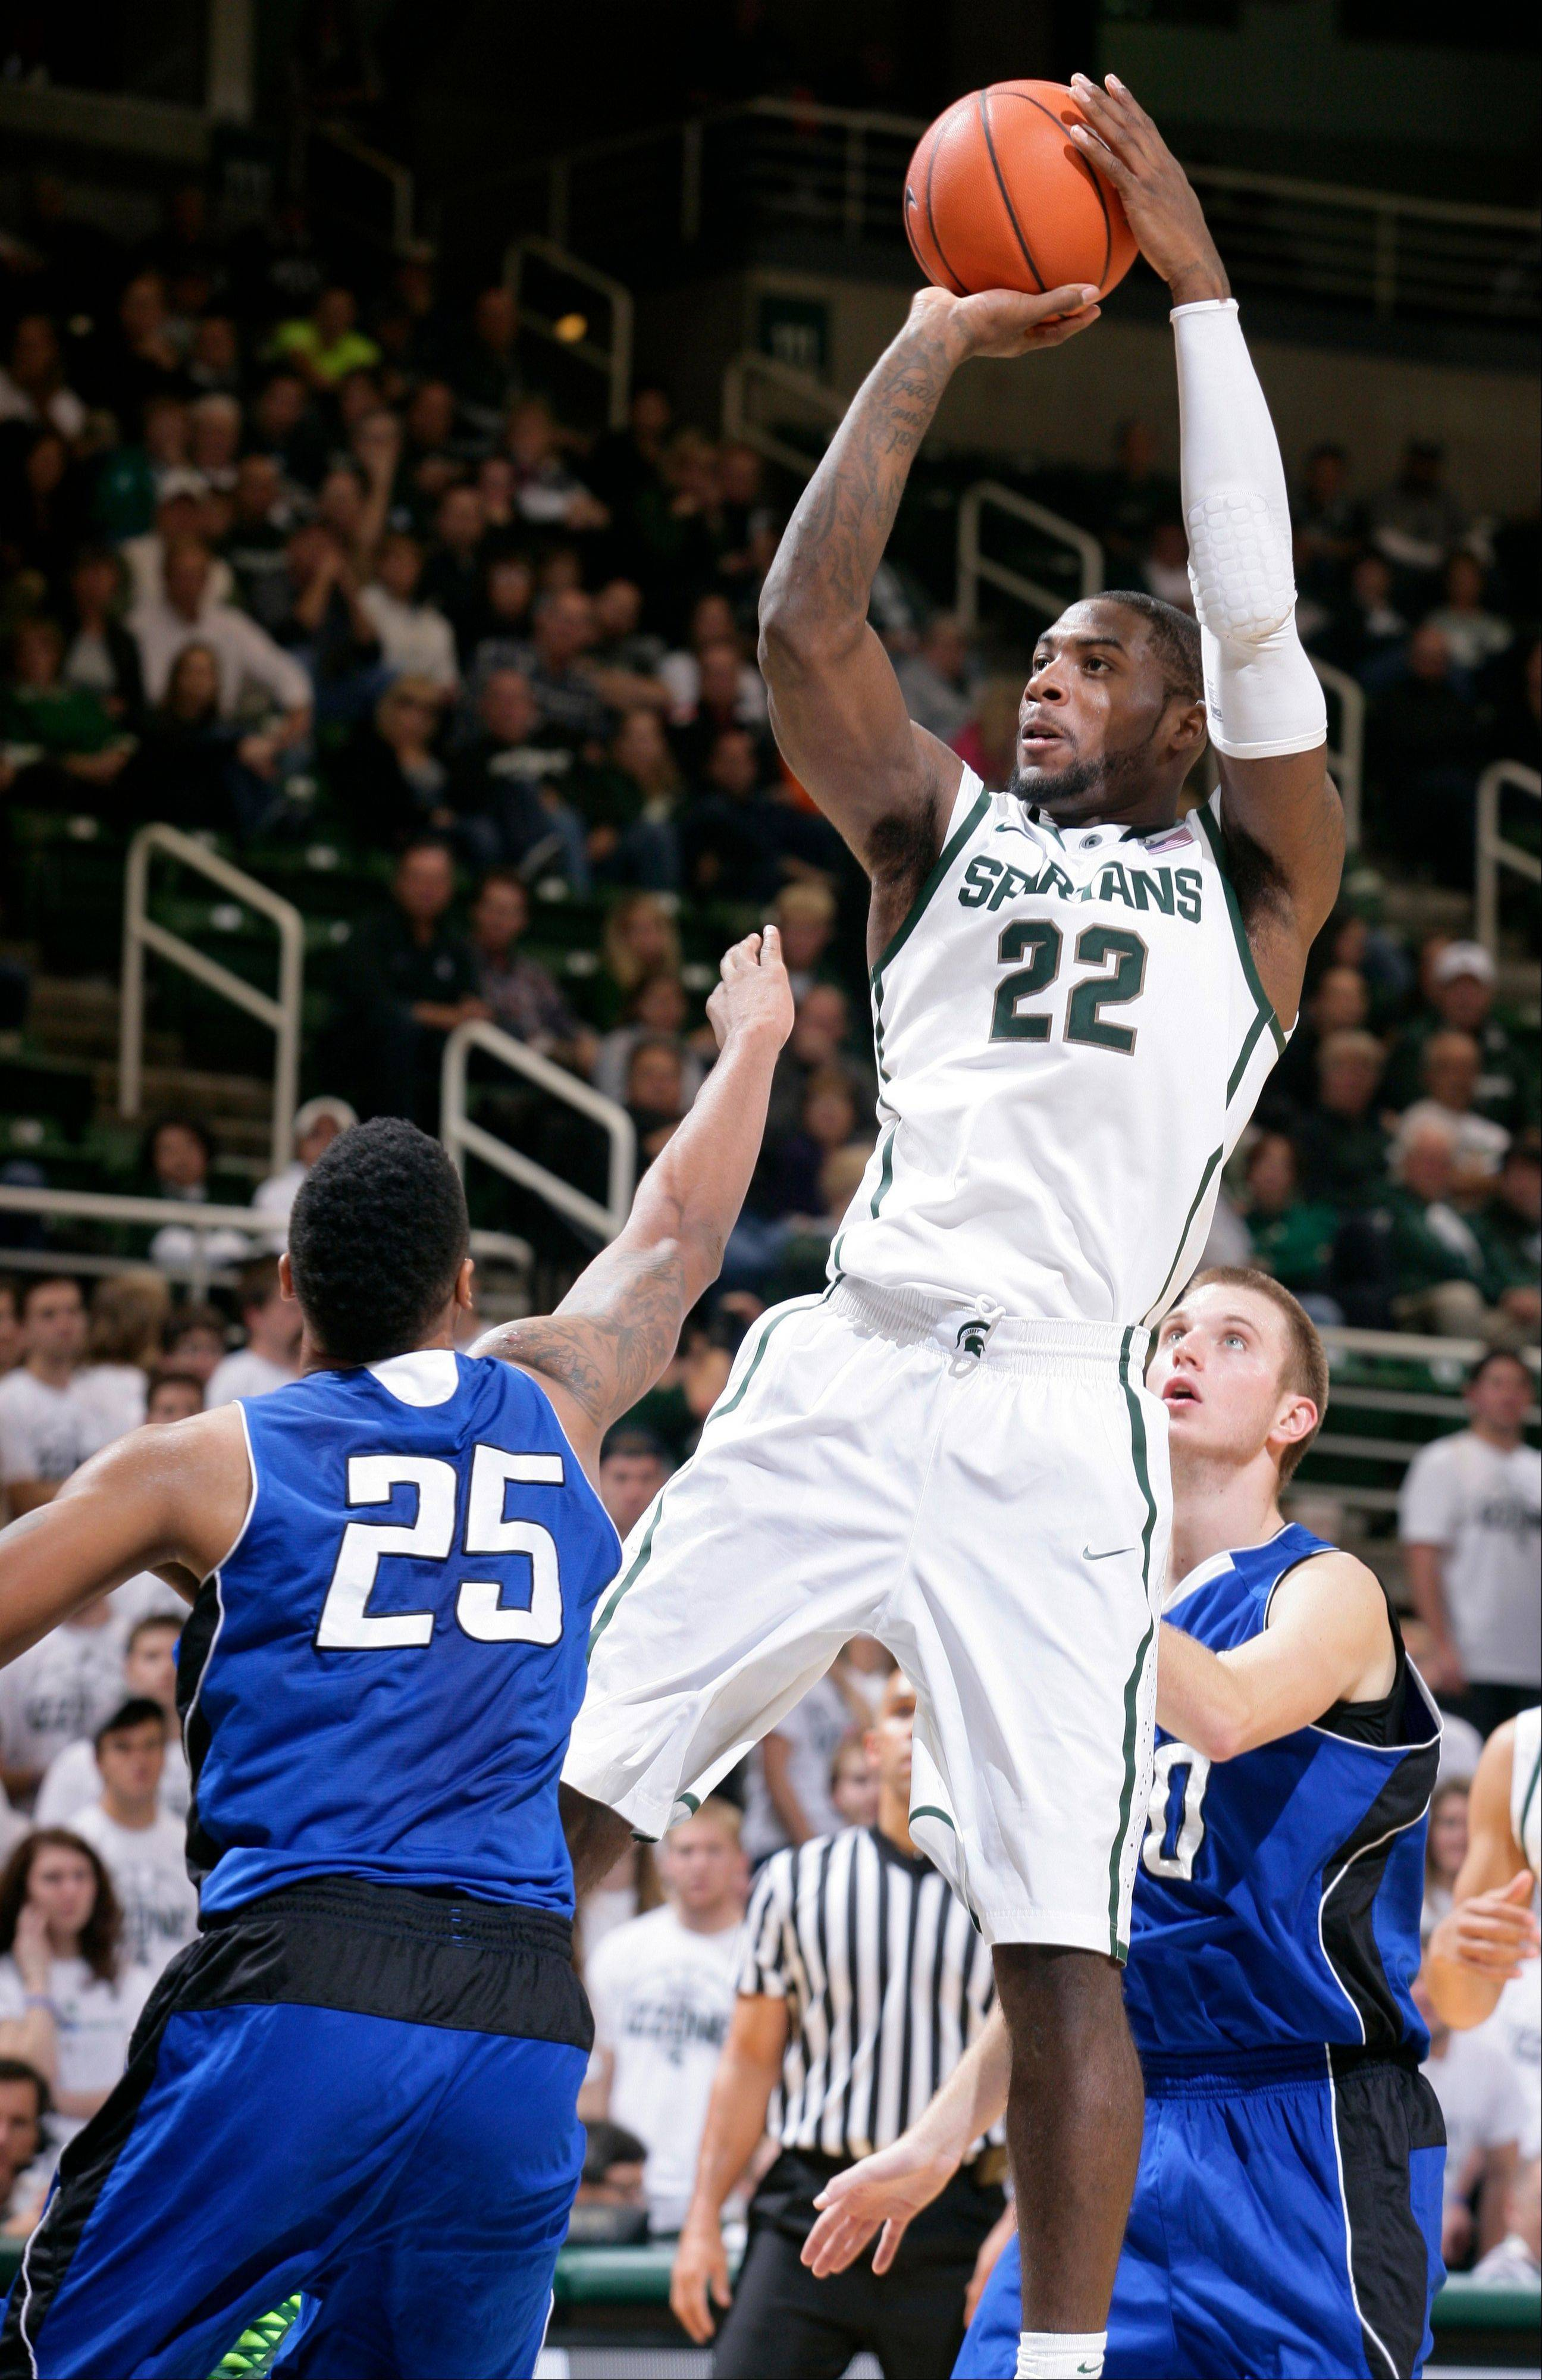 Michigan State�s Branden Dawson shoots over Grand Valley State�s Chaz Rollins during the second half of an exhibition game\ Tuesday in East Lansing, Mich. Michigan State won 101-52.